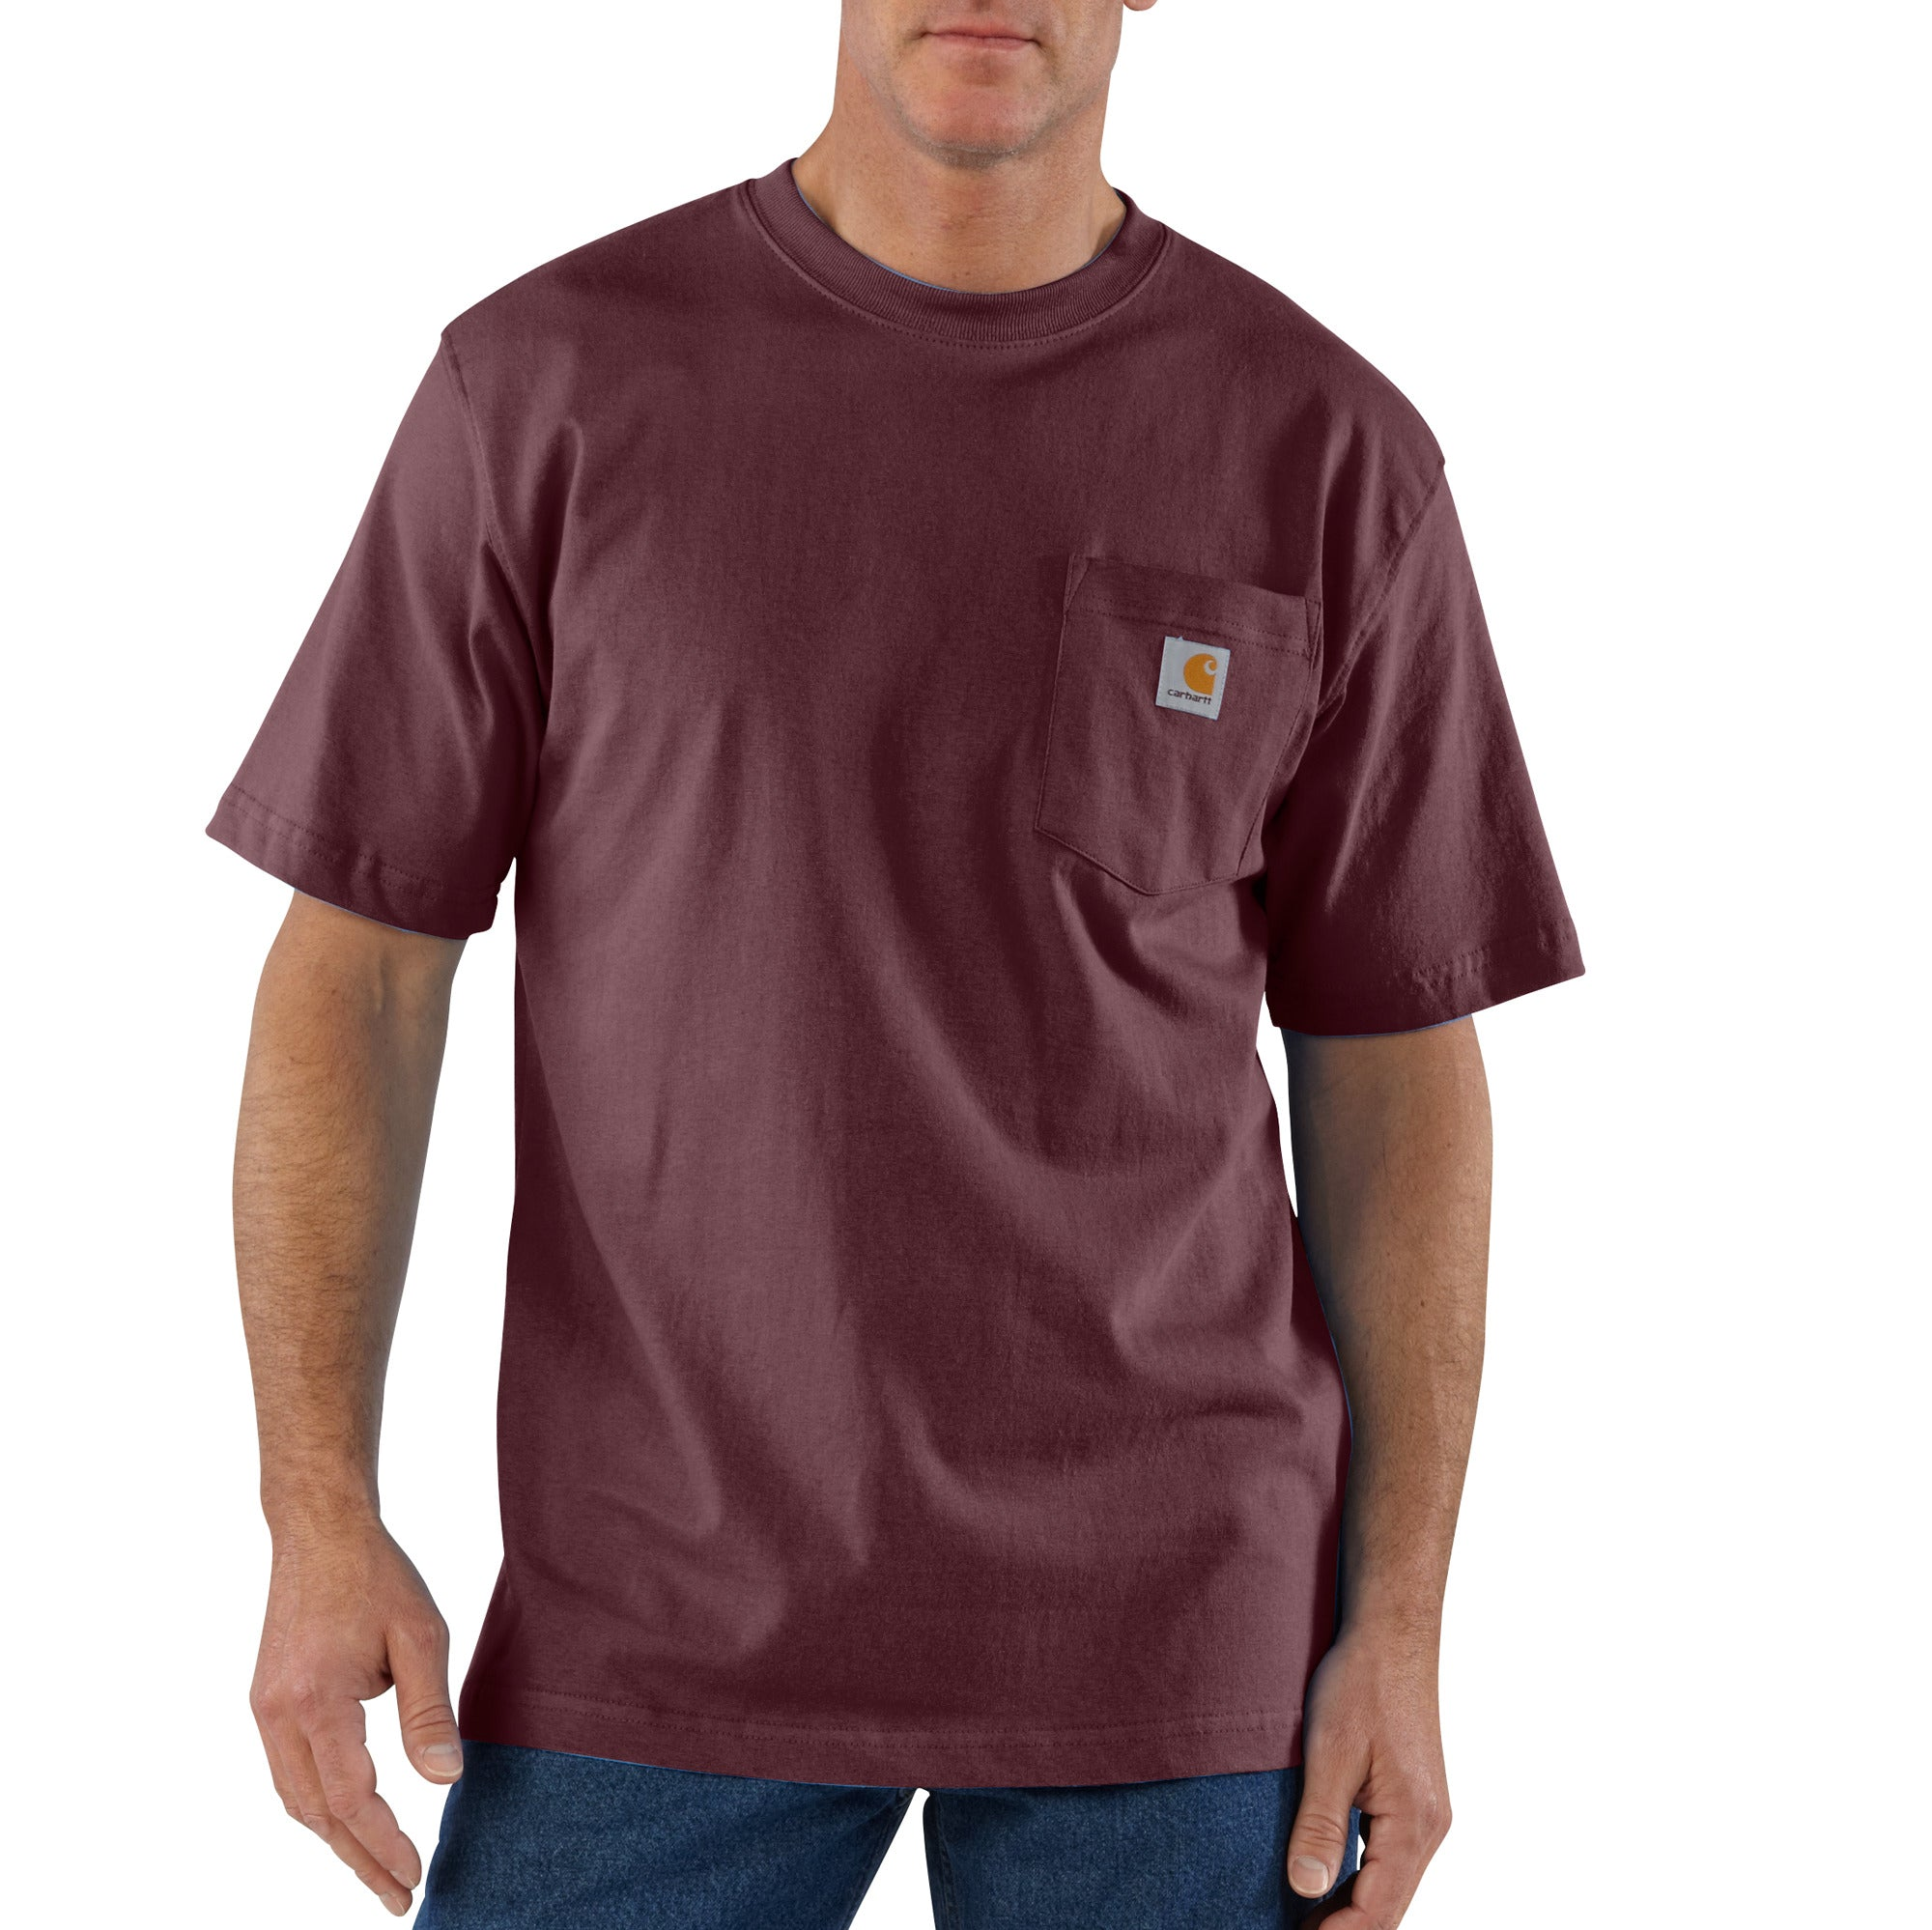 'Carhartt' Men's Workwear Heavyweight Pocket T-Shirt - Port